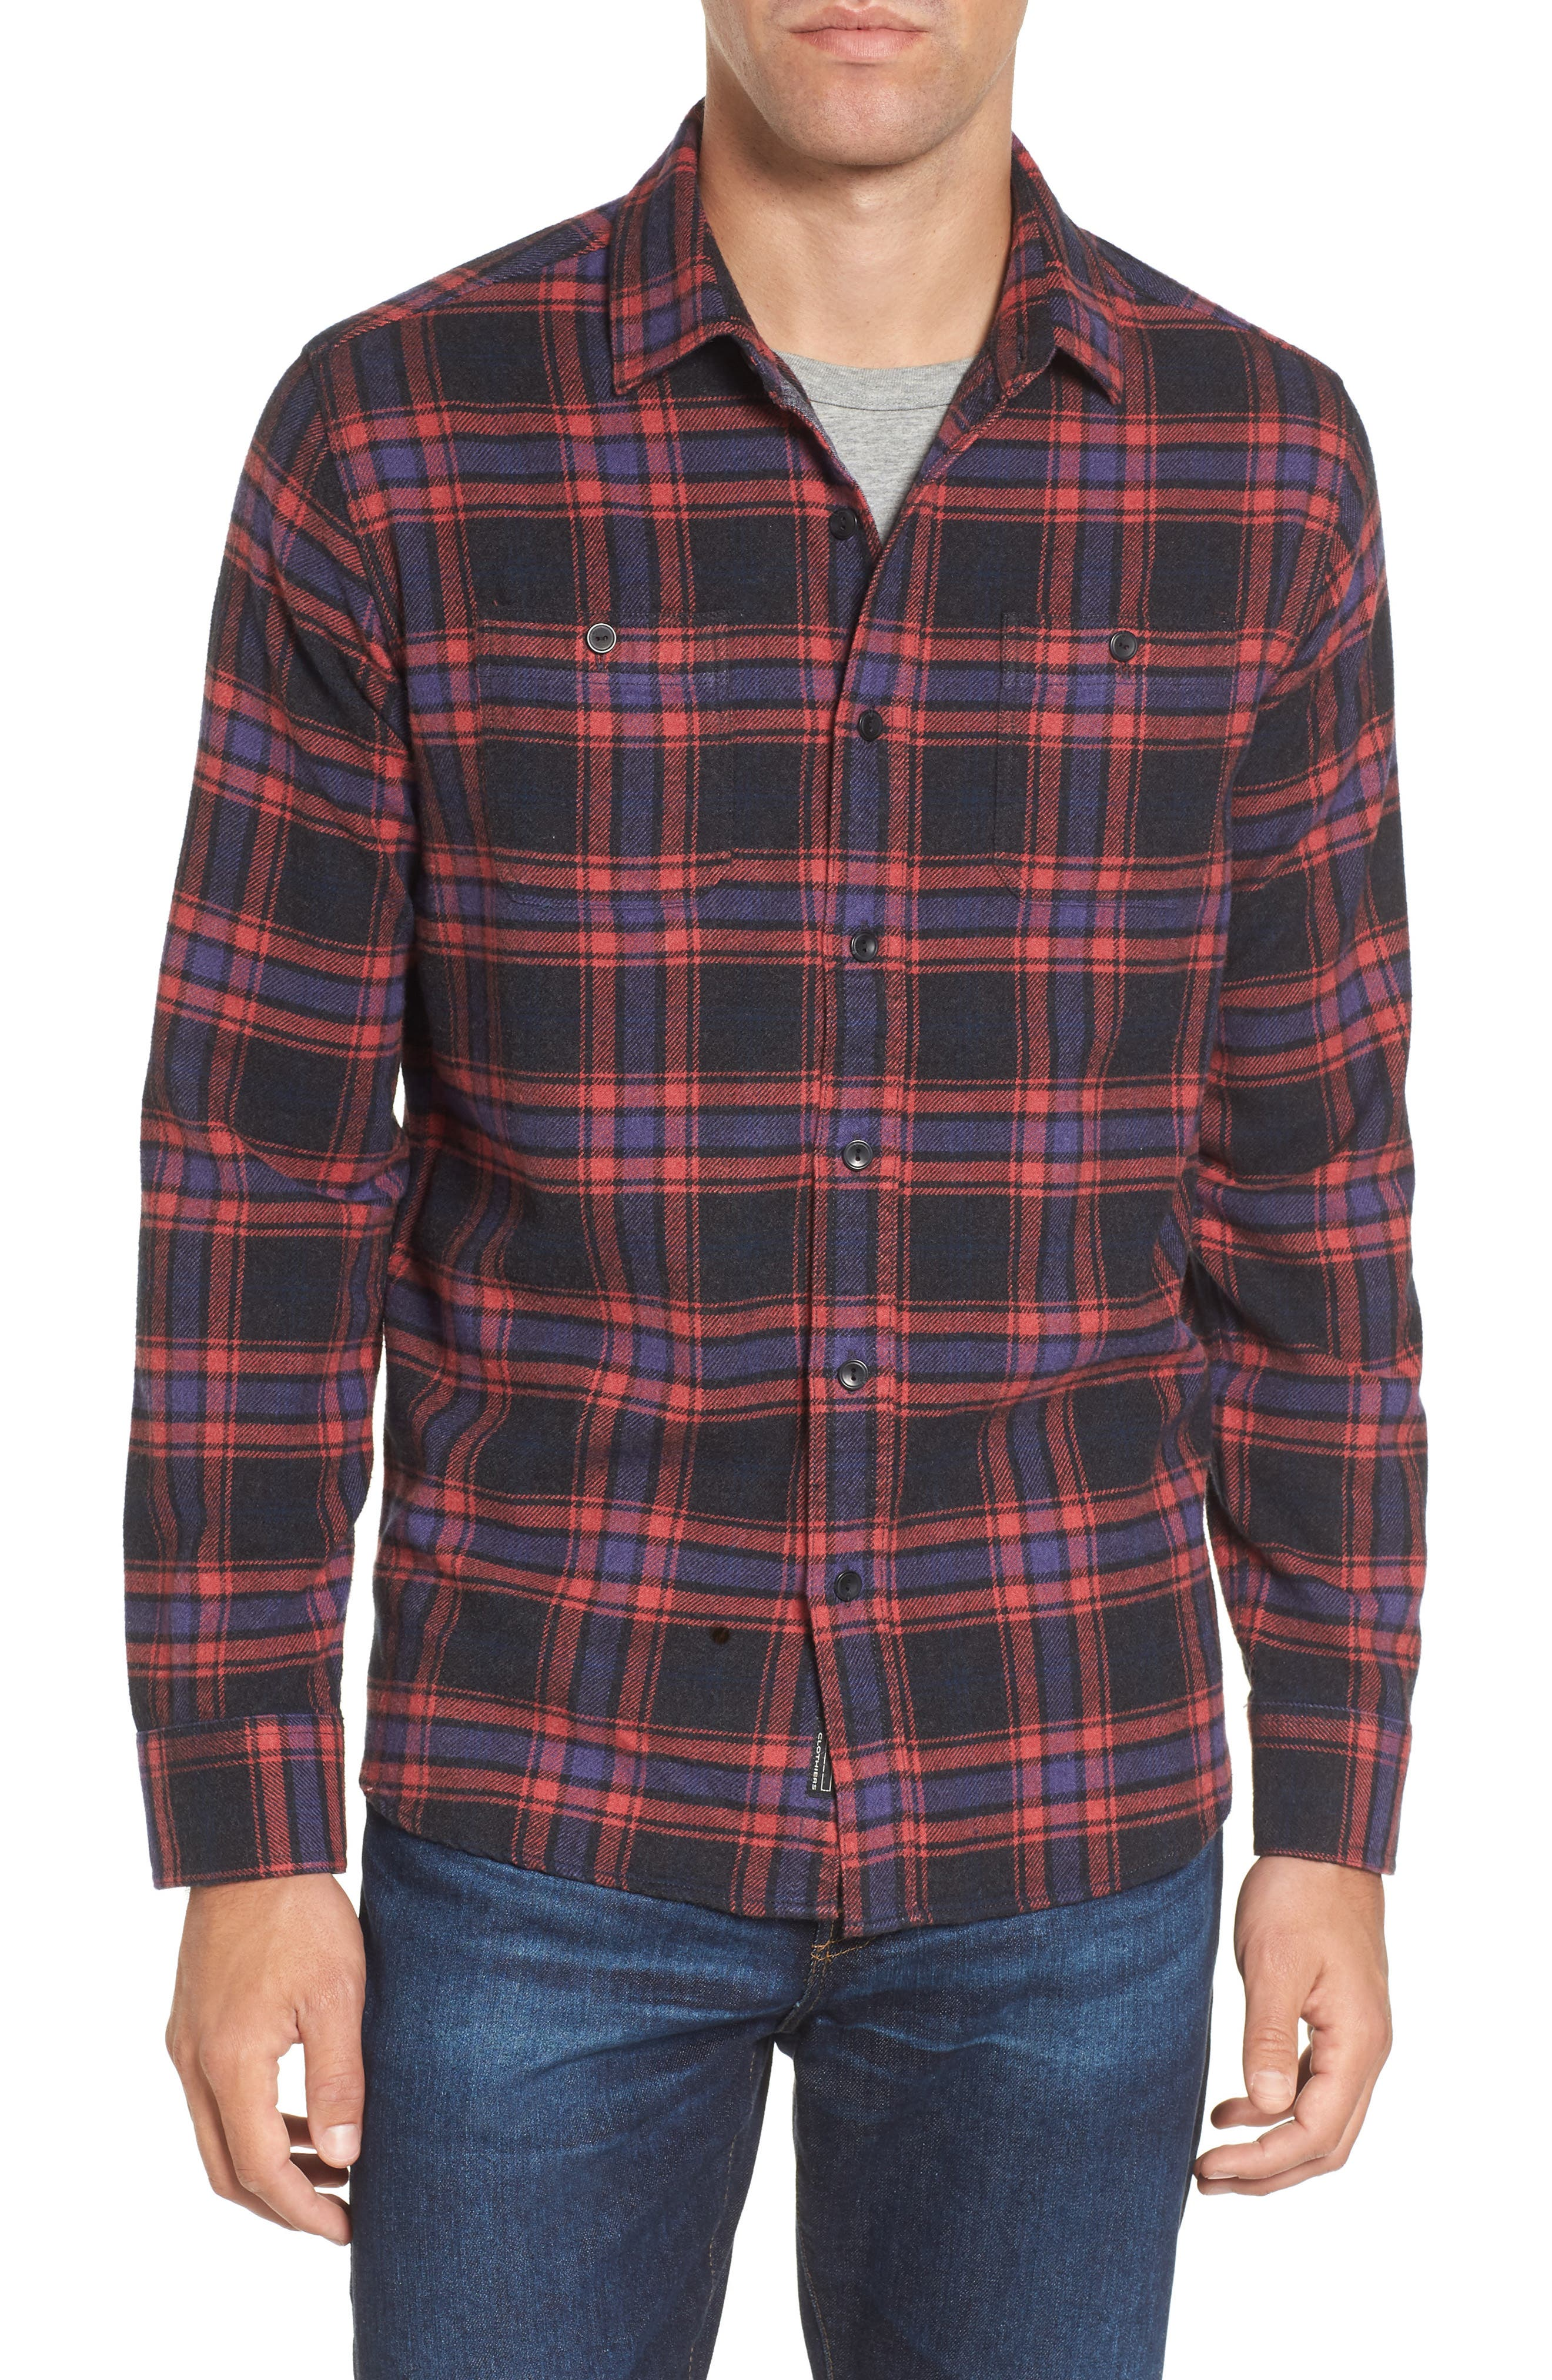 Chaucer Heritage Flannel Shirt,                         Main,                         color, 641